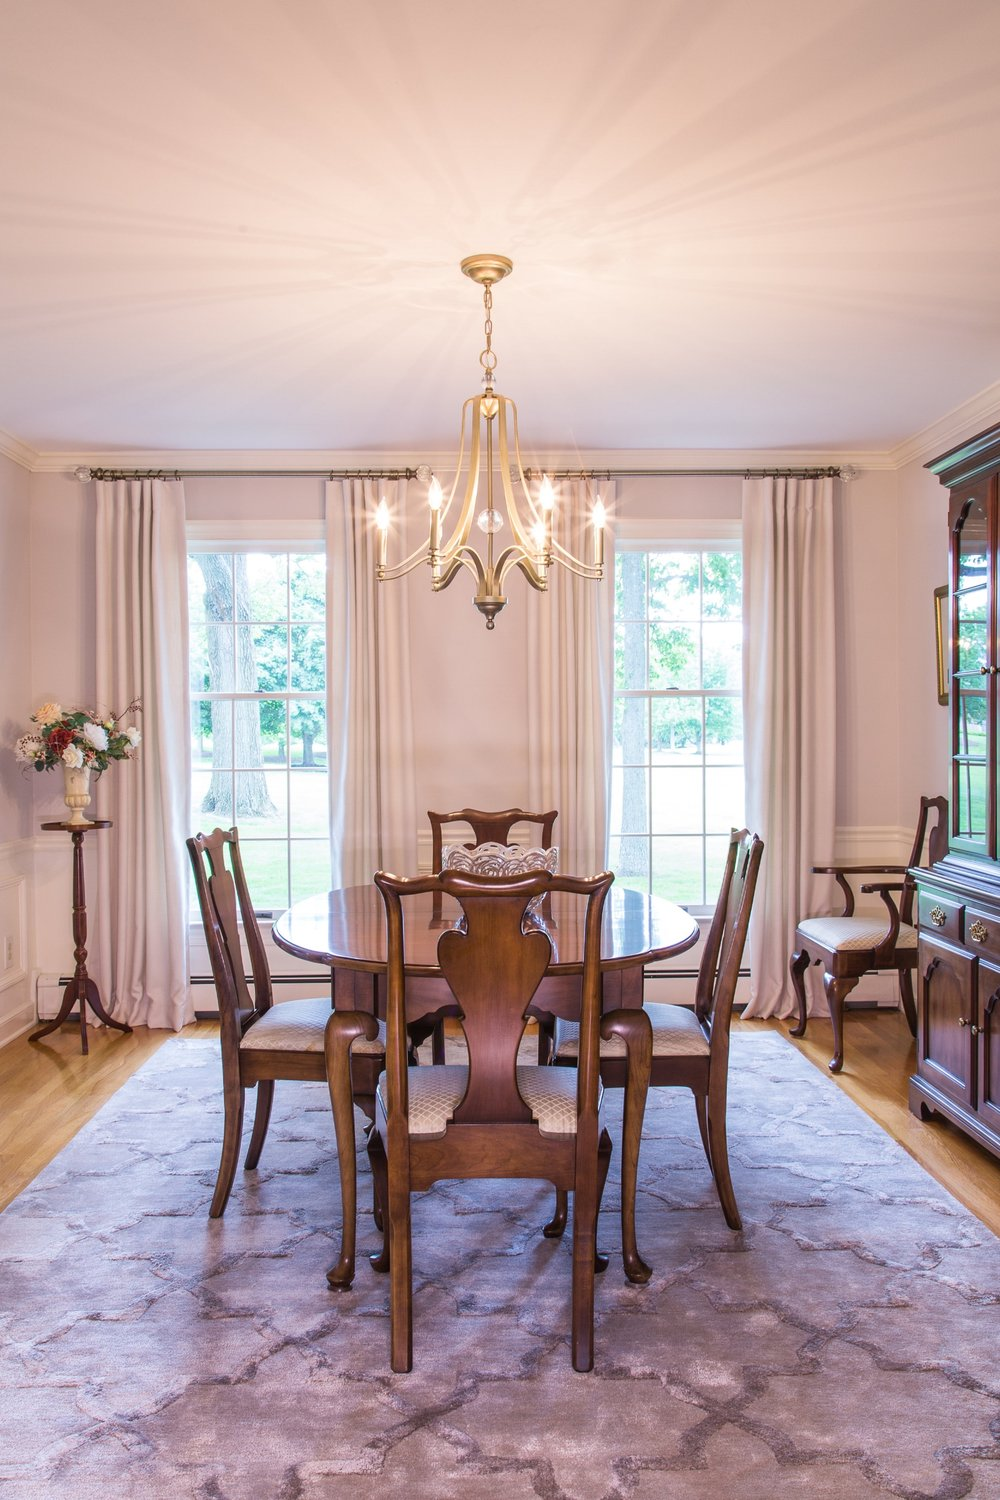 A lovely lilac-gray replaced striped wallpaper to give this Dining Room a light, airy feel, Bucks County, PA